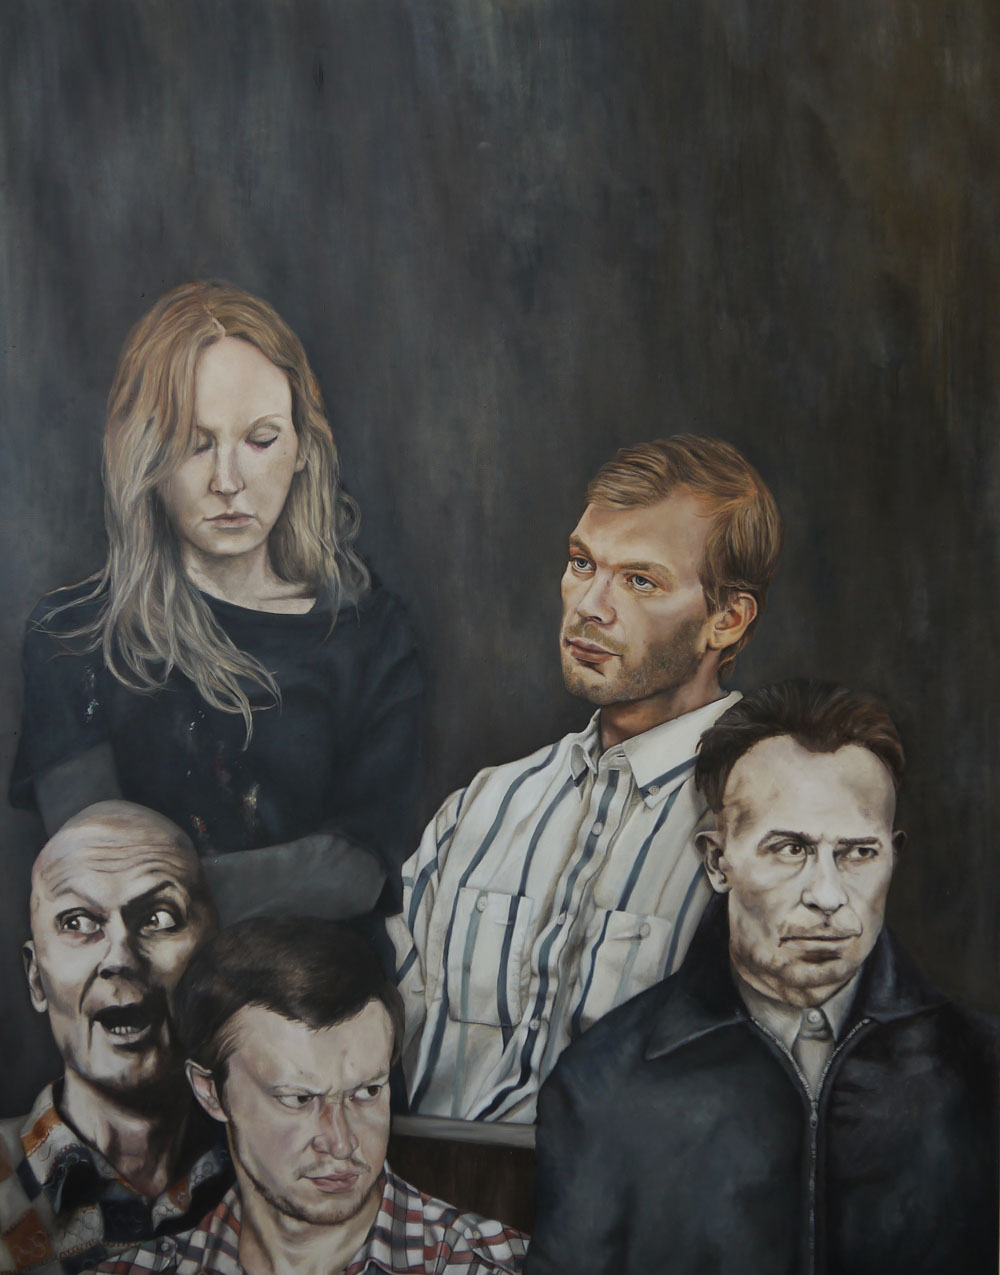 Malerei, böse: Lydia Balke: disarm, 2015 Öl auf Leinwand / Oil on canvas 140 x 110 cm (c) courtesy of the artist